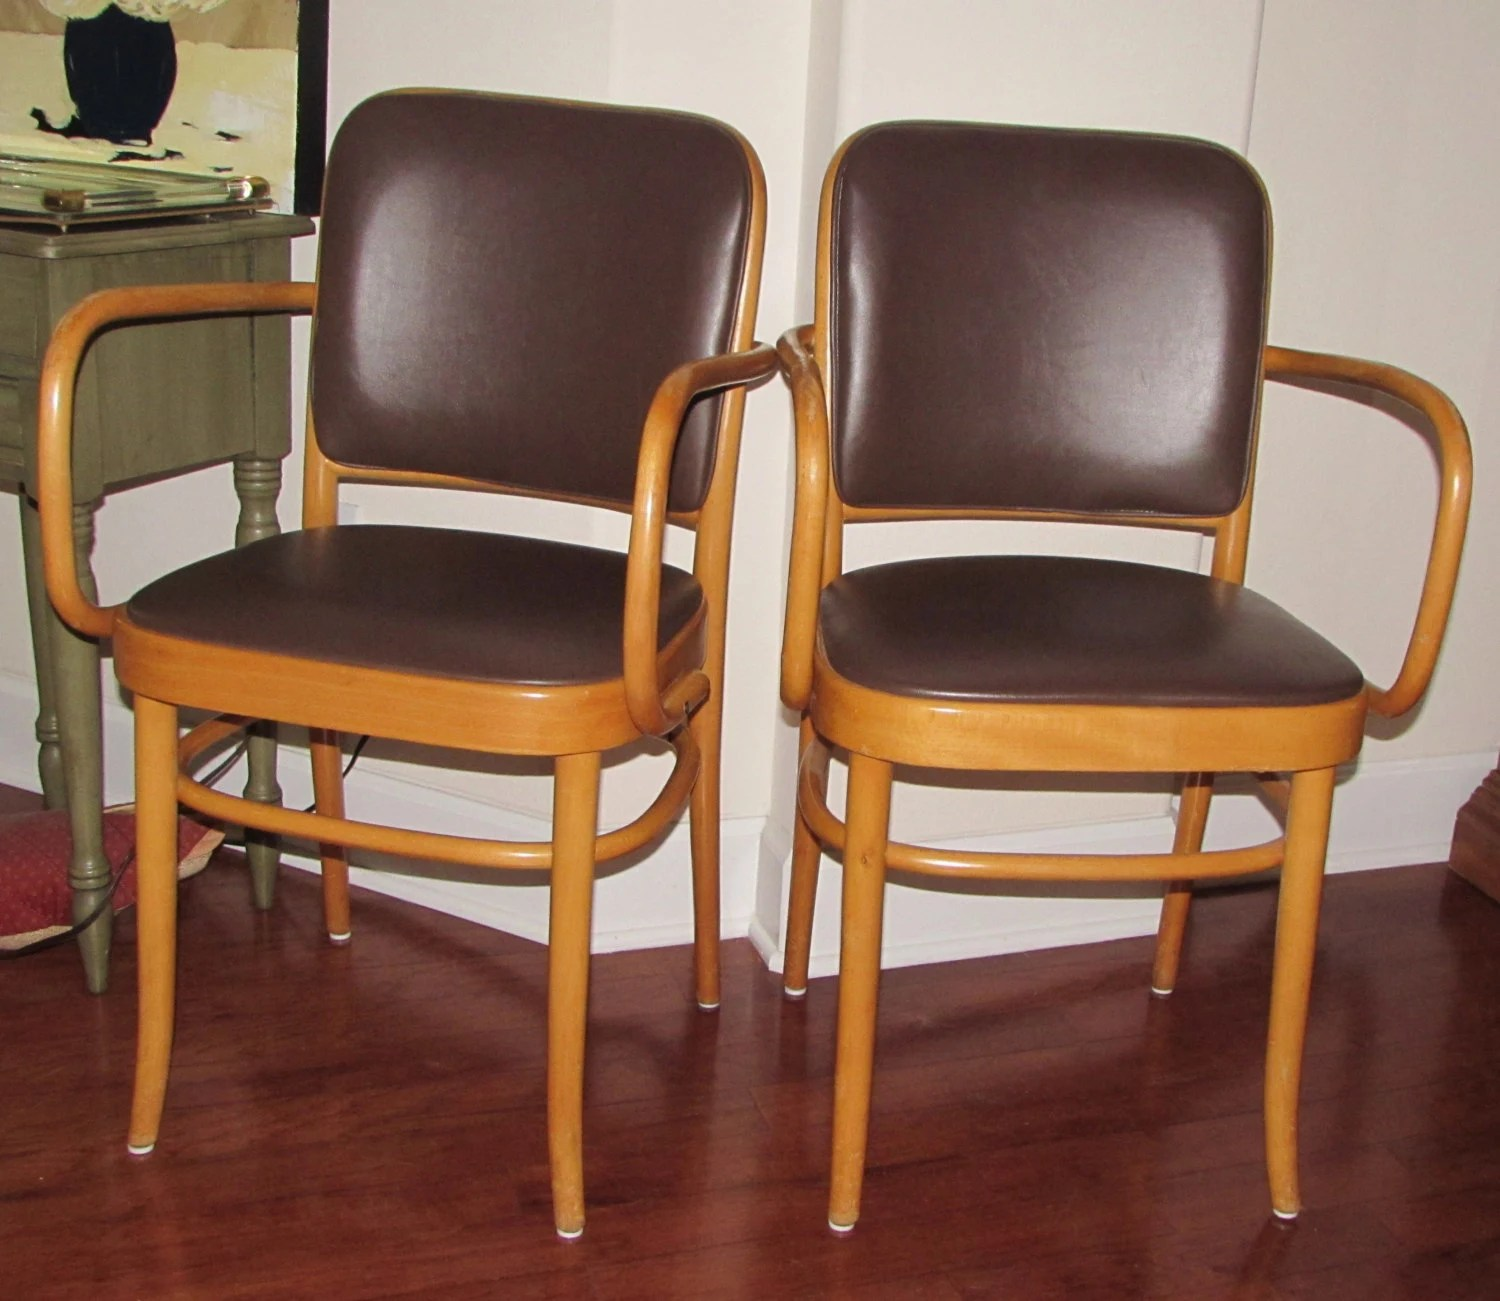 modern bentwood chairs heated stadium with backs mid century arm prague chair or no